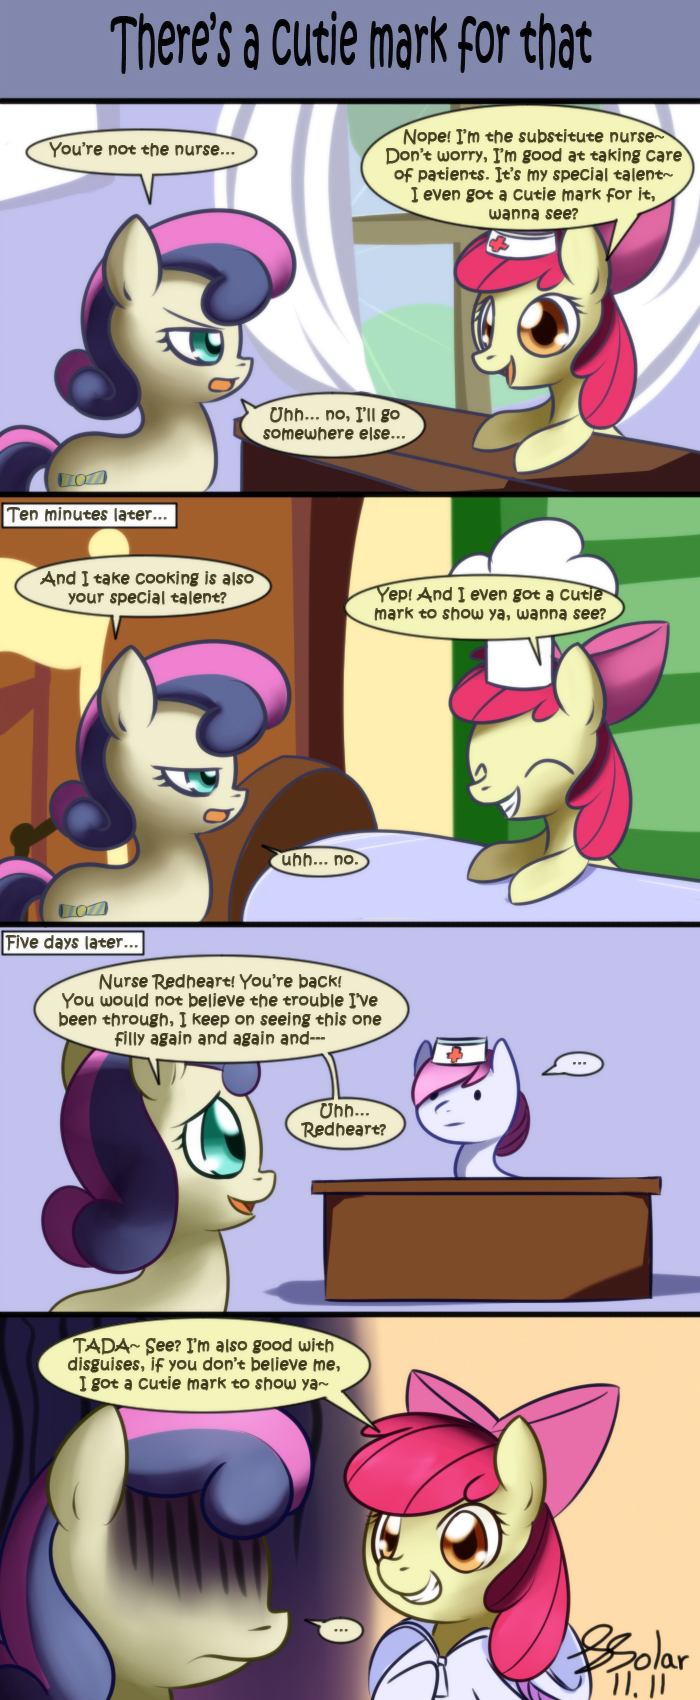 There's a Cutie Mark for that